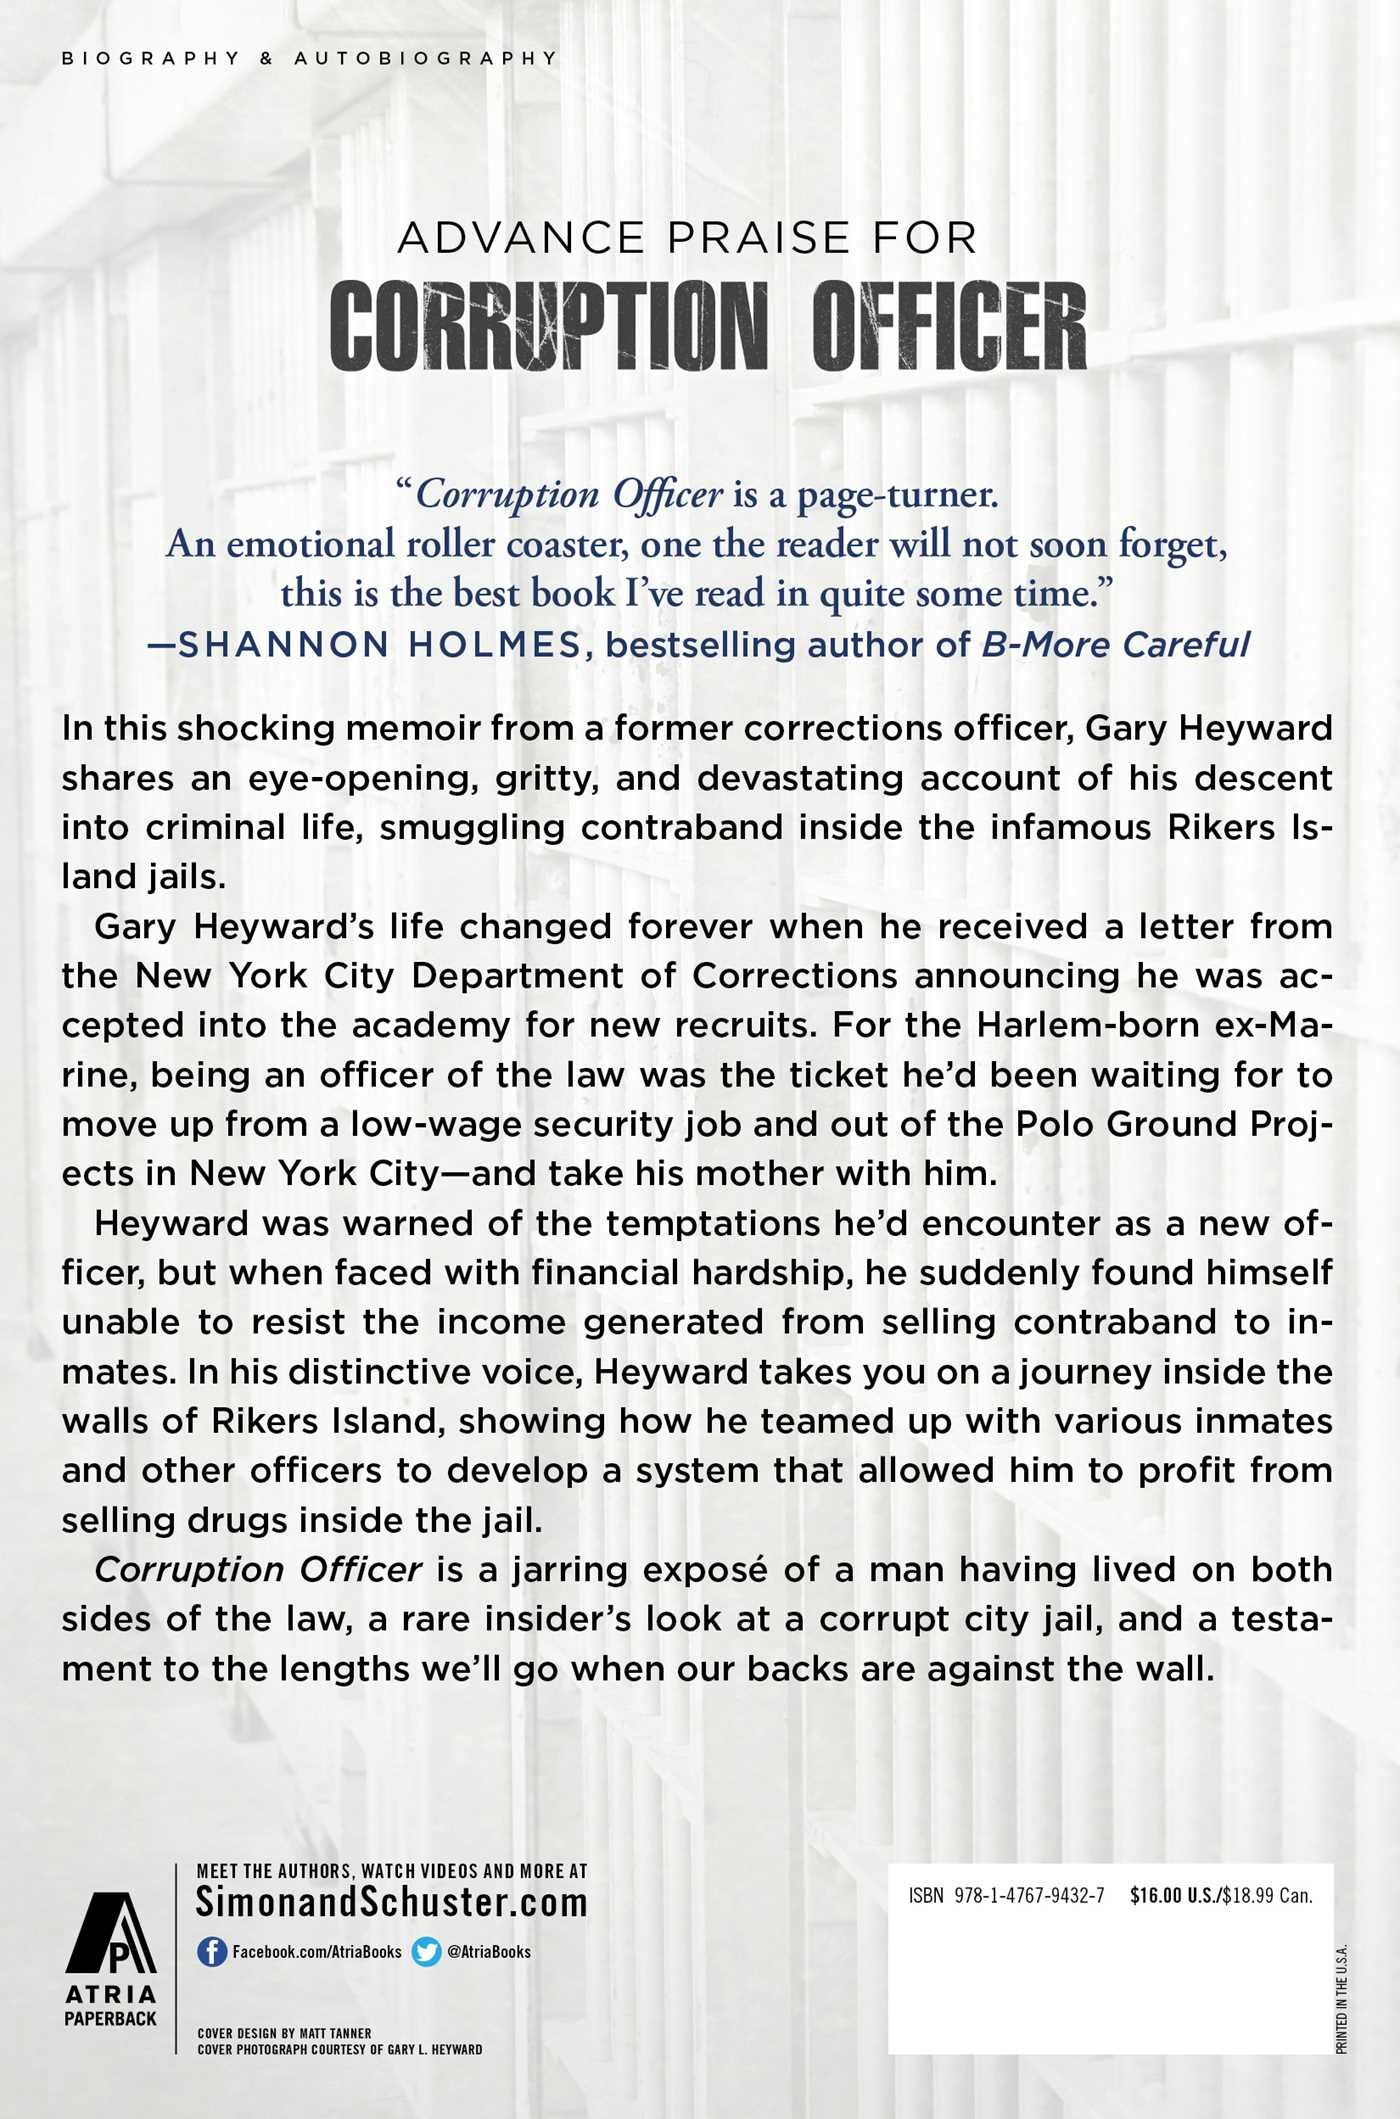 Corruption Officer: From Jail Guard To Perpetrator Inside Rikers Island:  Gary L. Heyward: 9781476794327: Amazon.com: Books